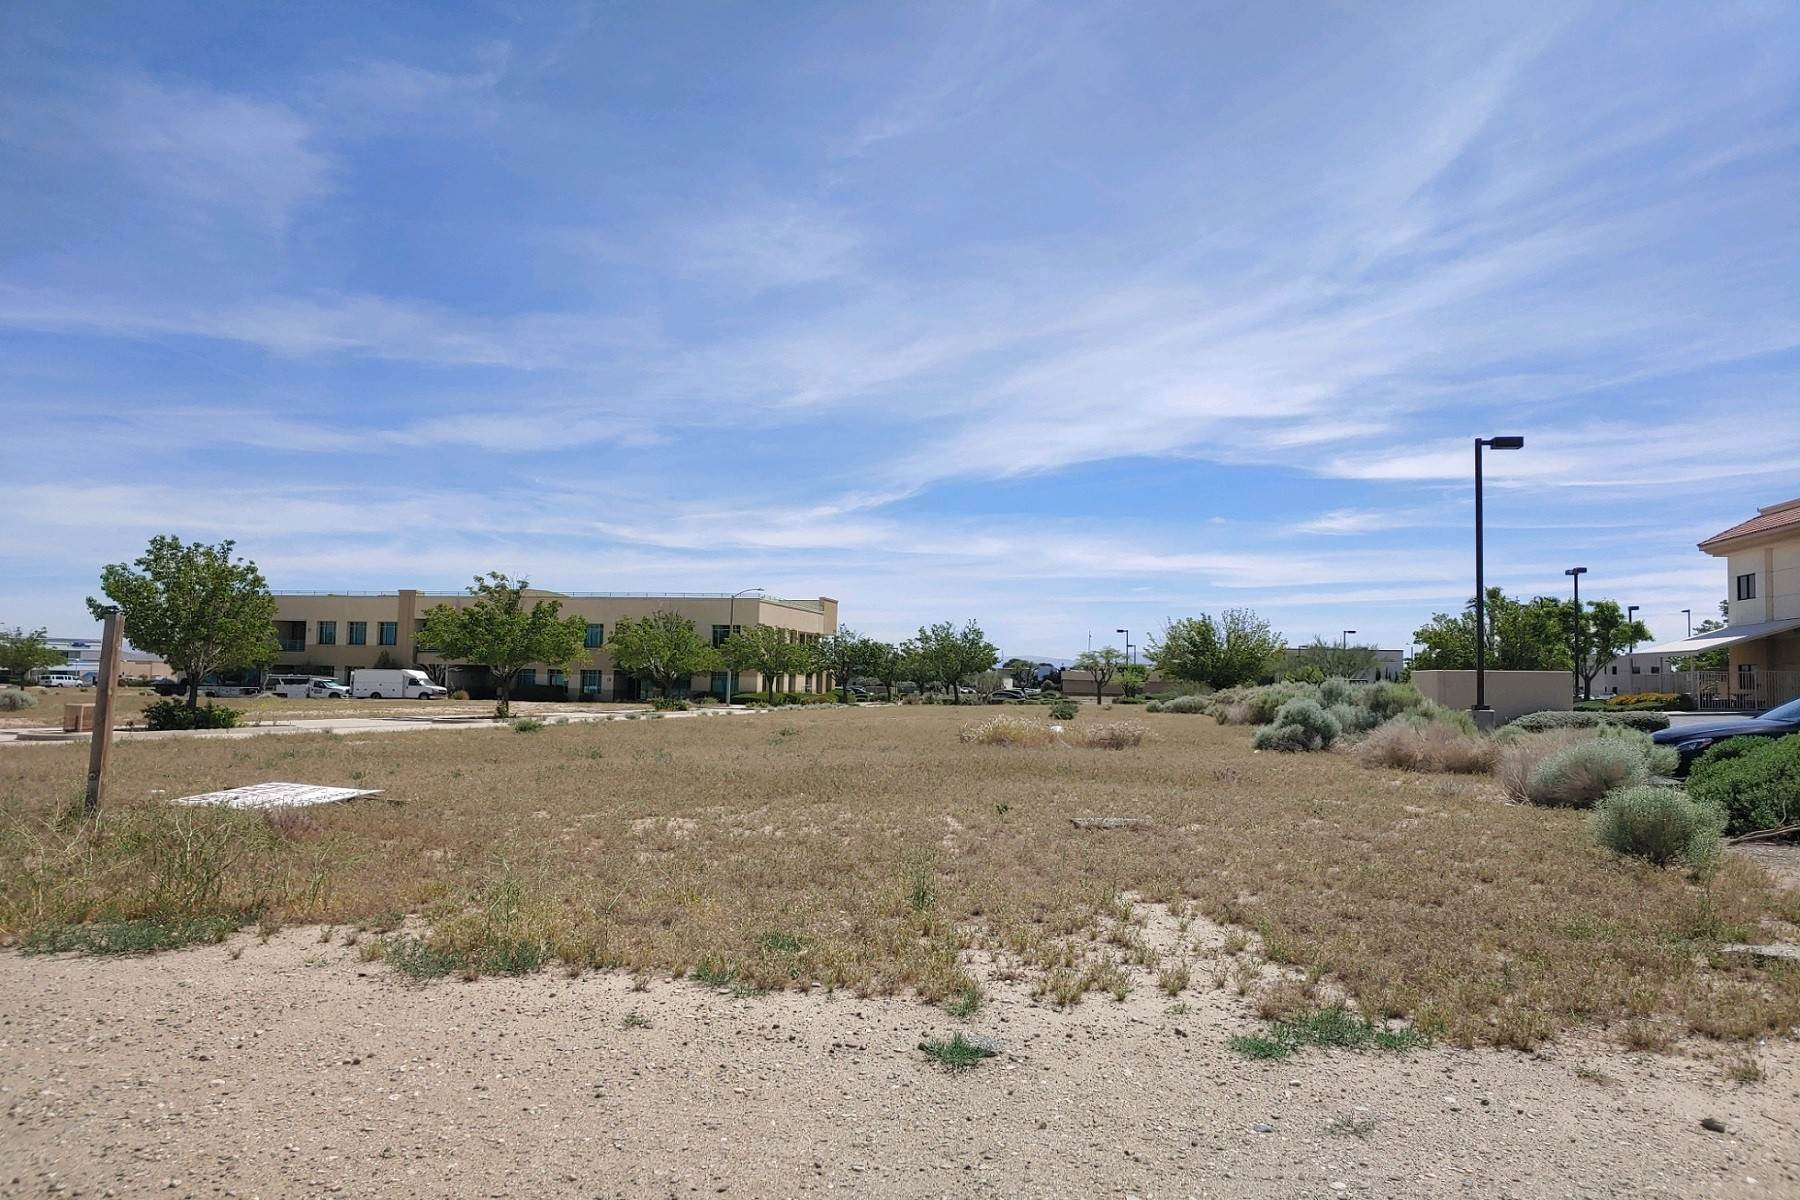 Land for Sale at 0 California Avenue, Victorville, California 92392 0 California Avenue Victorville, California 92392 United States